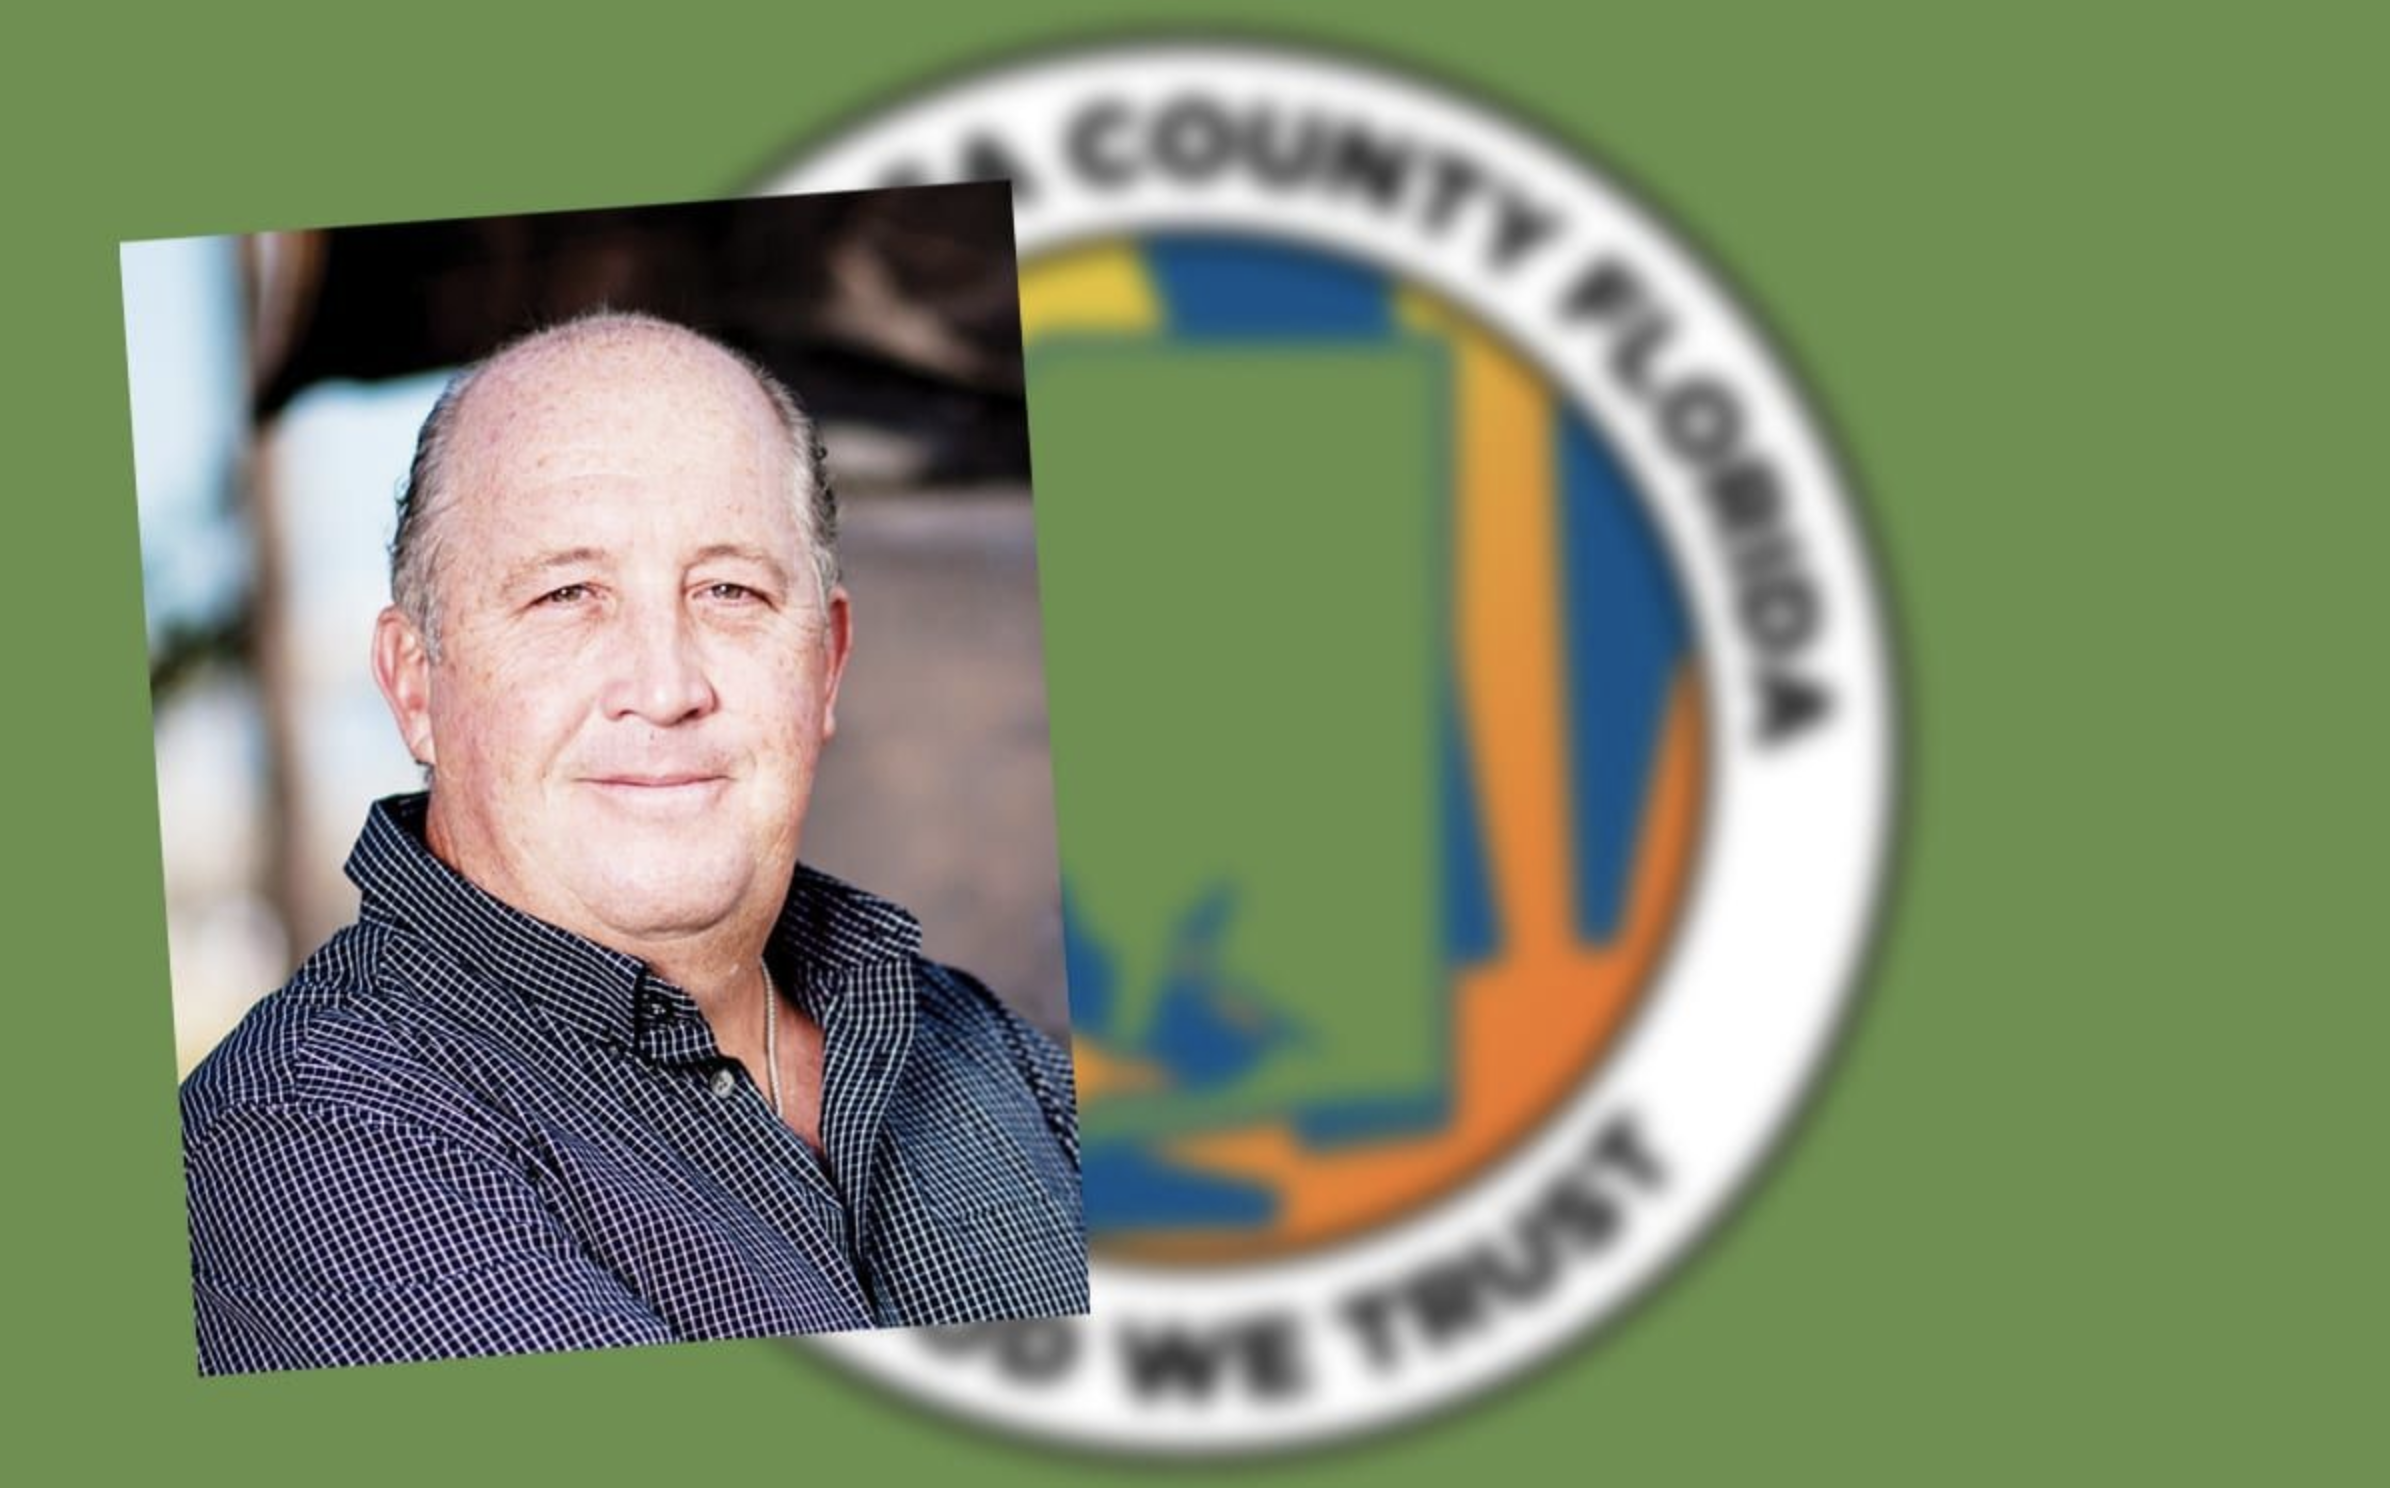 A county commissioner in front of the Santa Rosa County crest